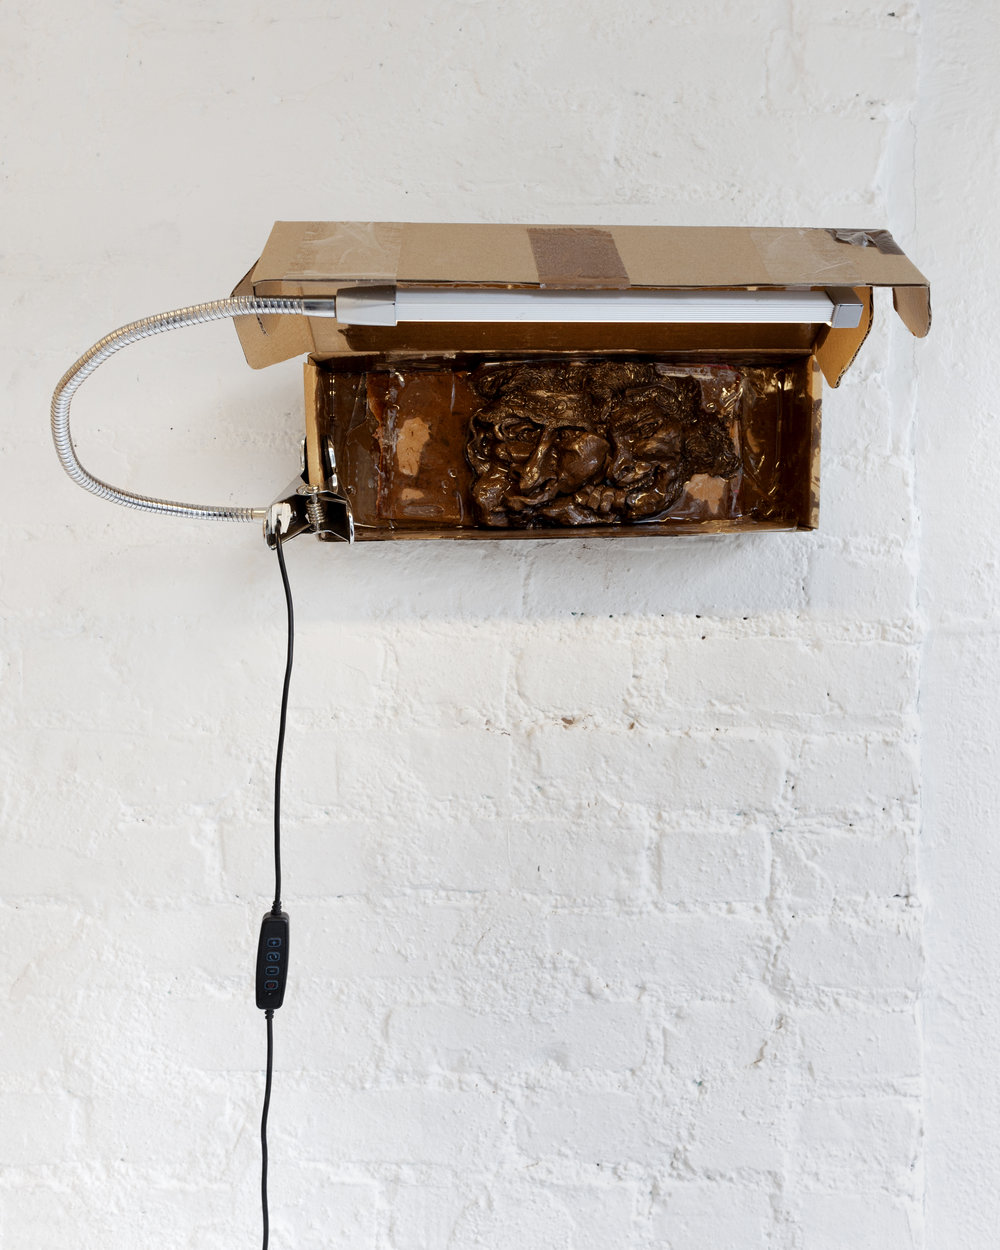 """Pooneh Maghazhe, Let's Do This, water based clay, resin packing tape, LED clam light, cardboard shipping box, 20""""x9""""x10"""", 2018"""